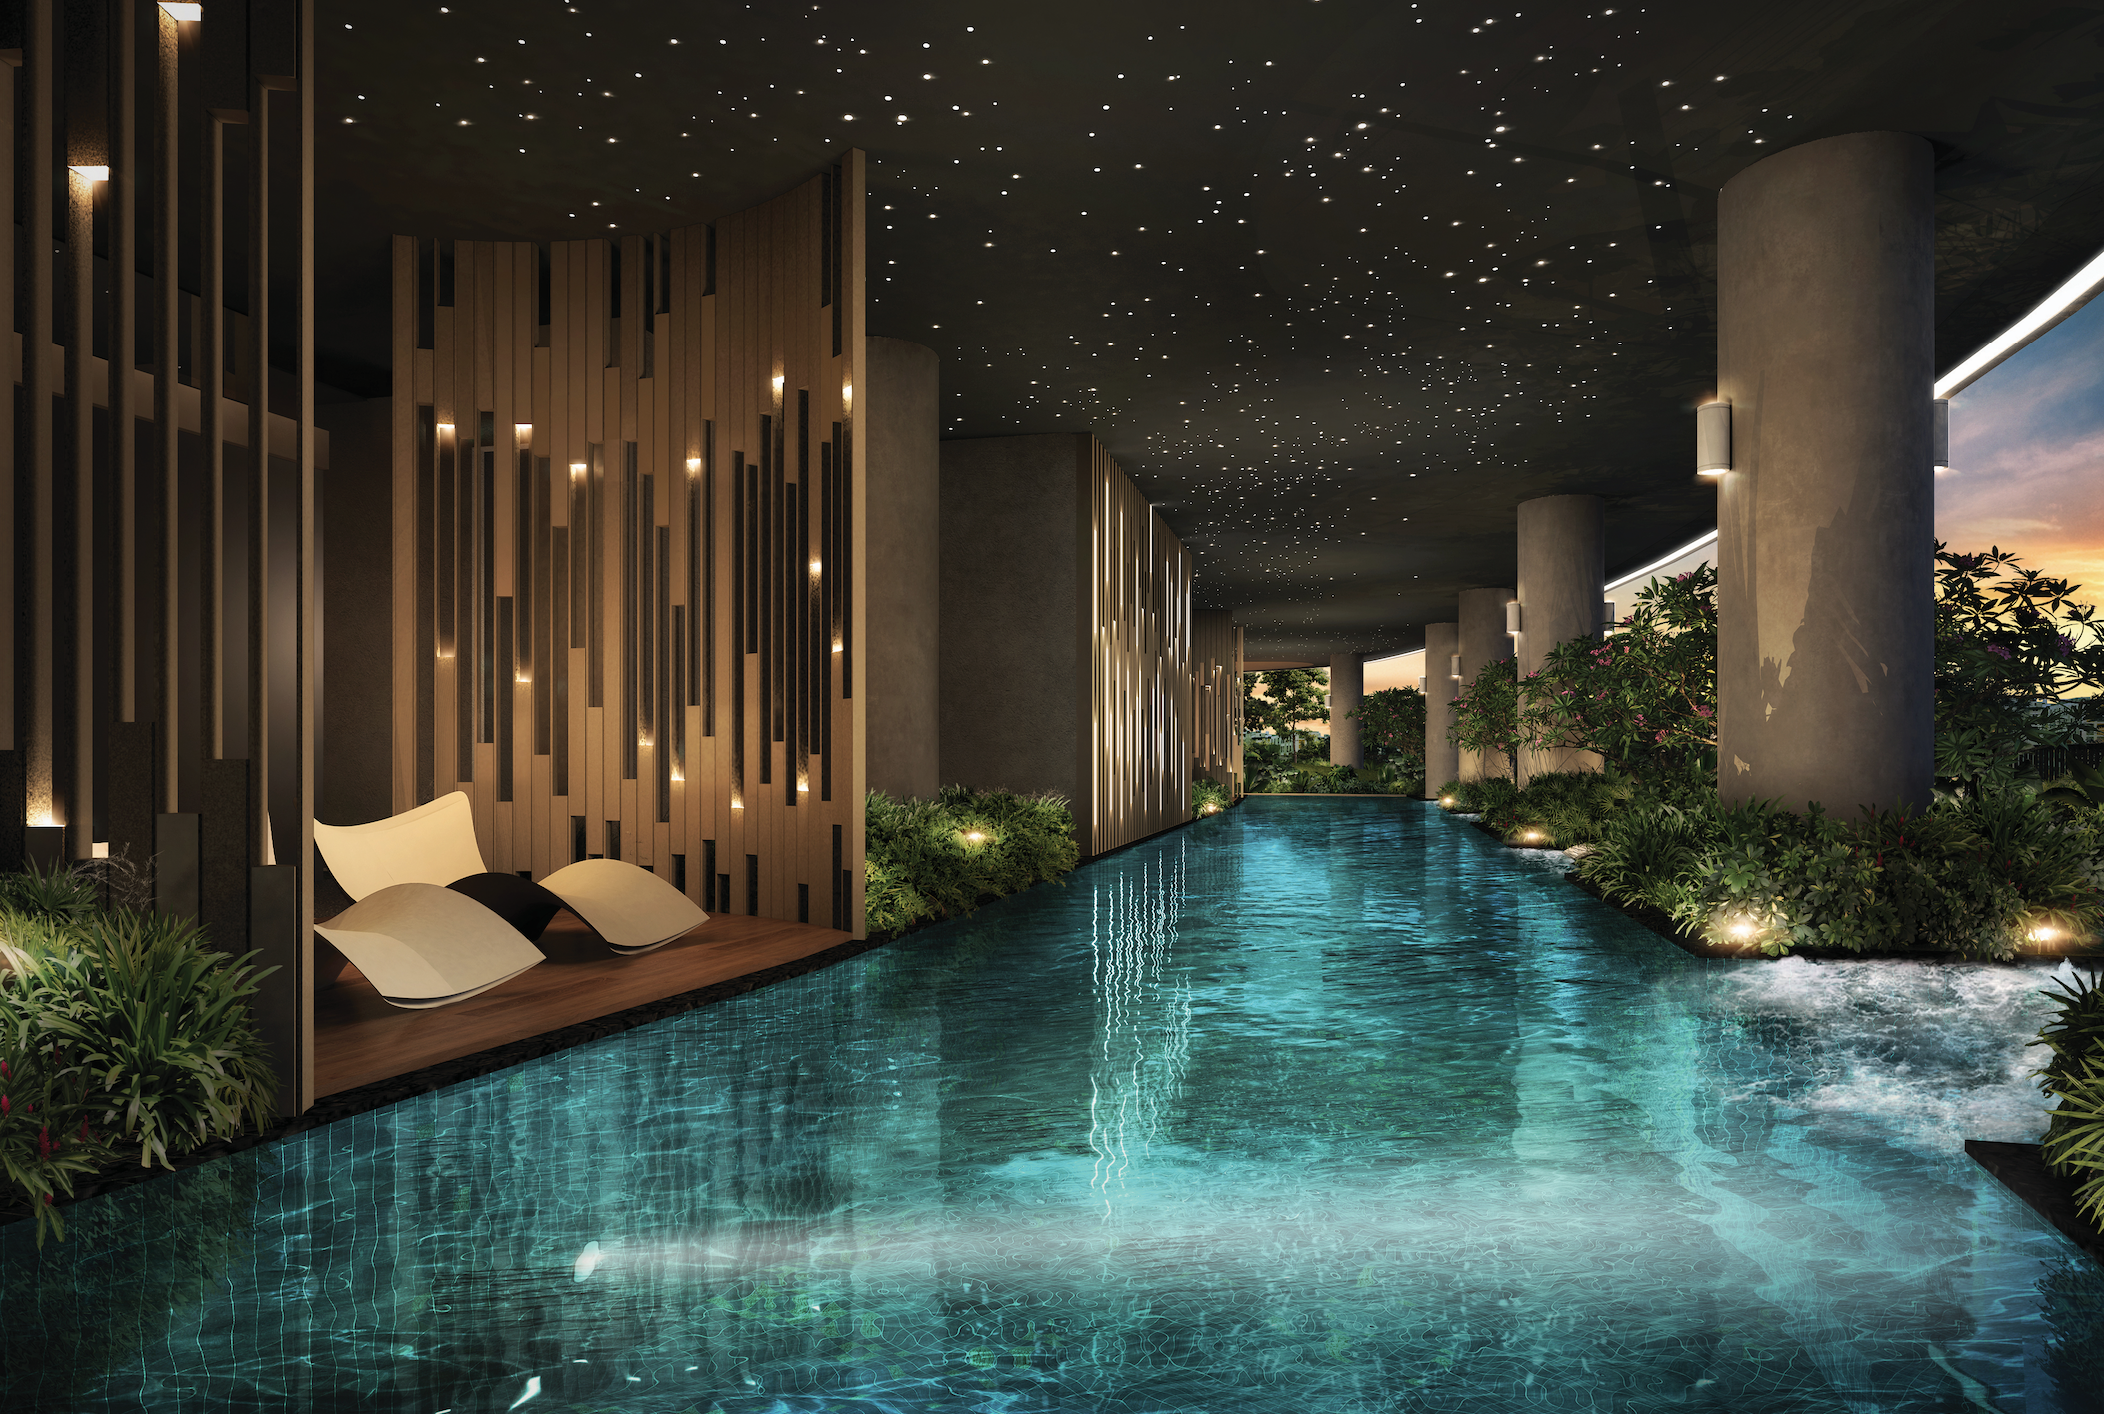 THE ANTARES - Swim under the stars at The Antares' indoor pool